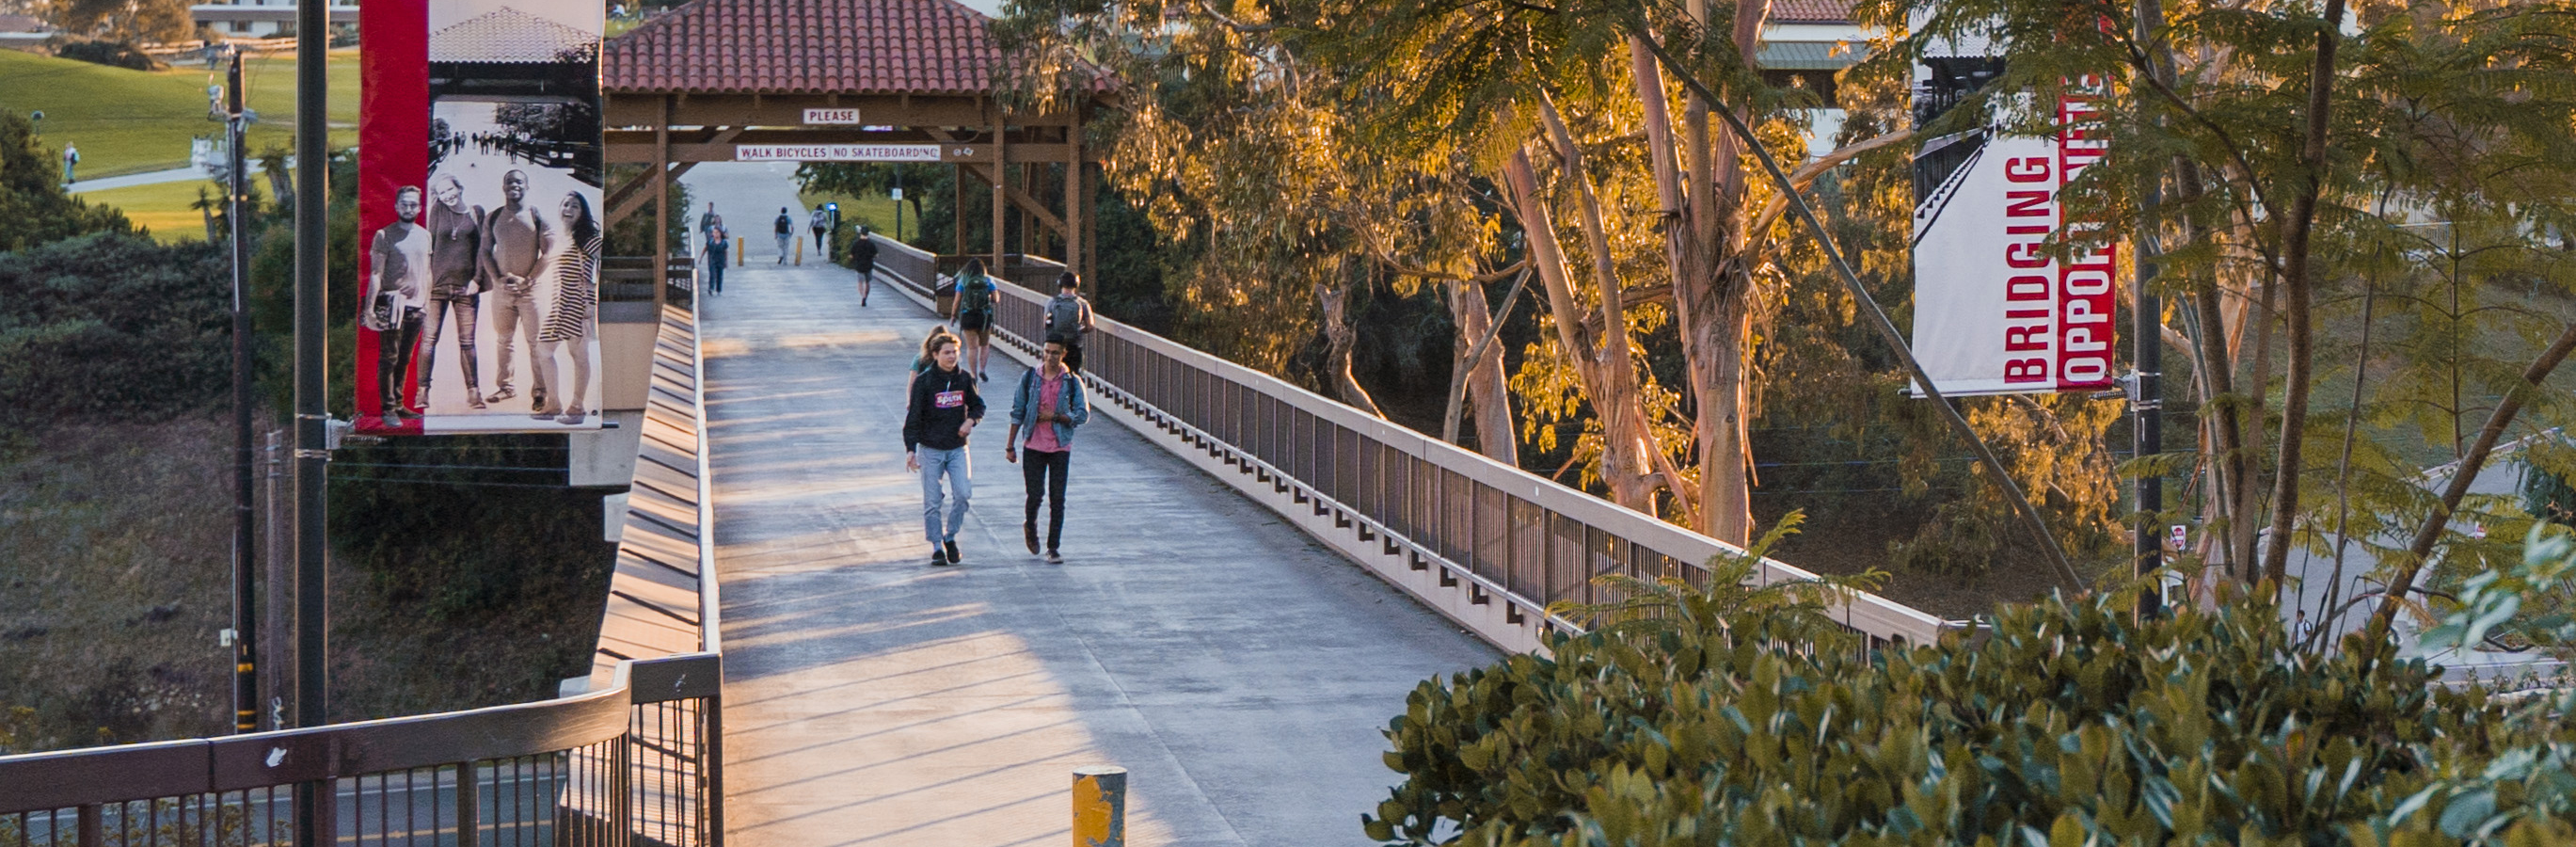 Santa Barbara City College students walking across the bridge.